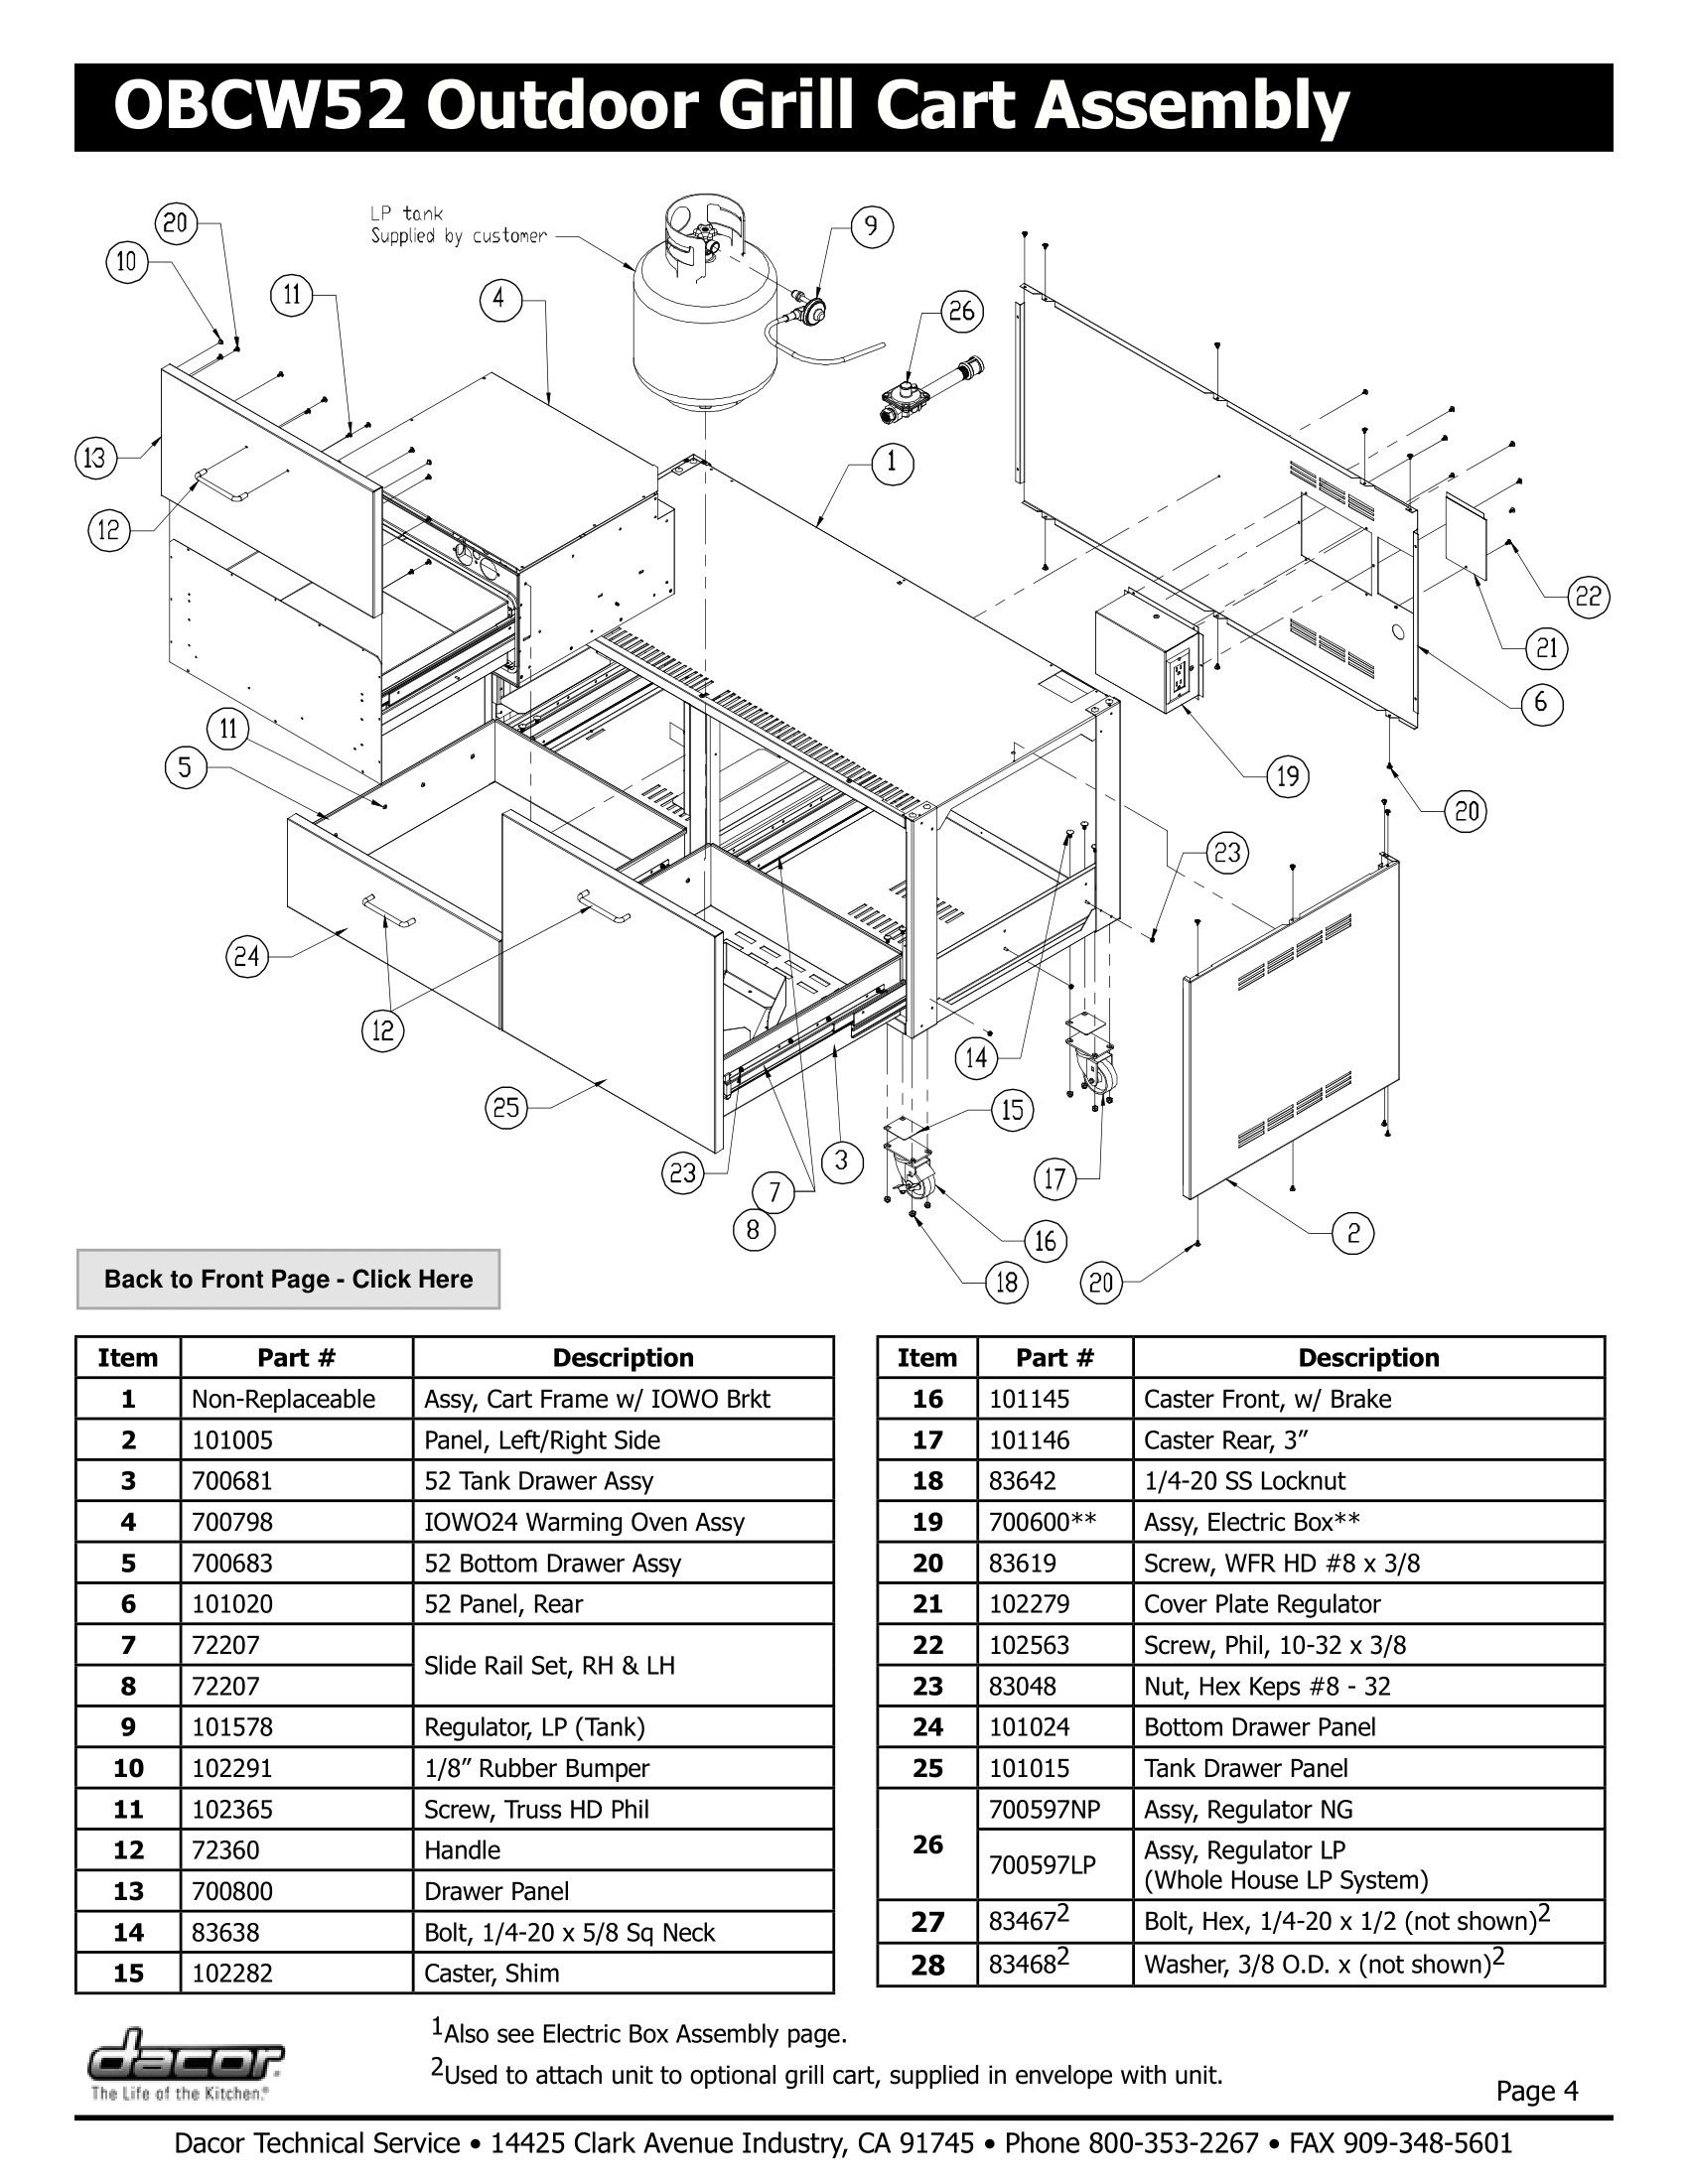 Dacor OBCW52 Assembly Schematic